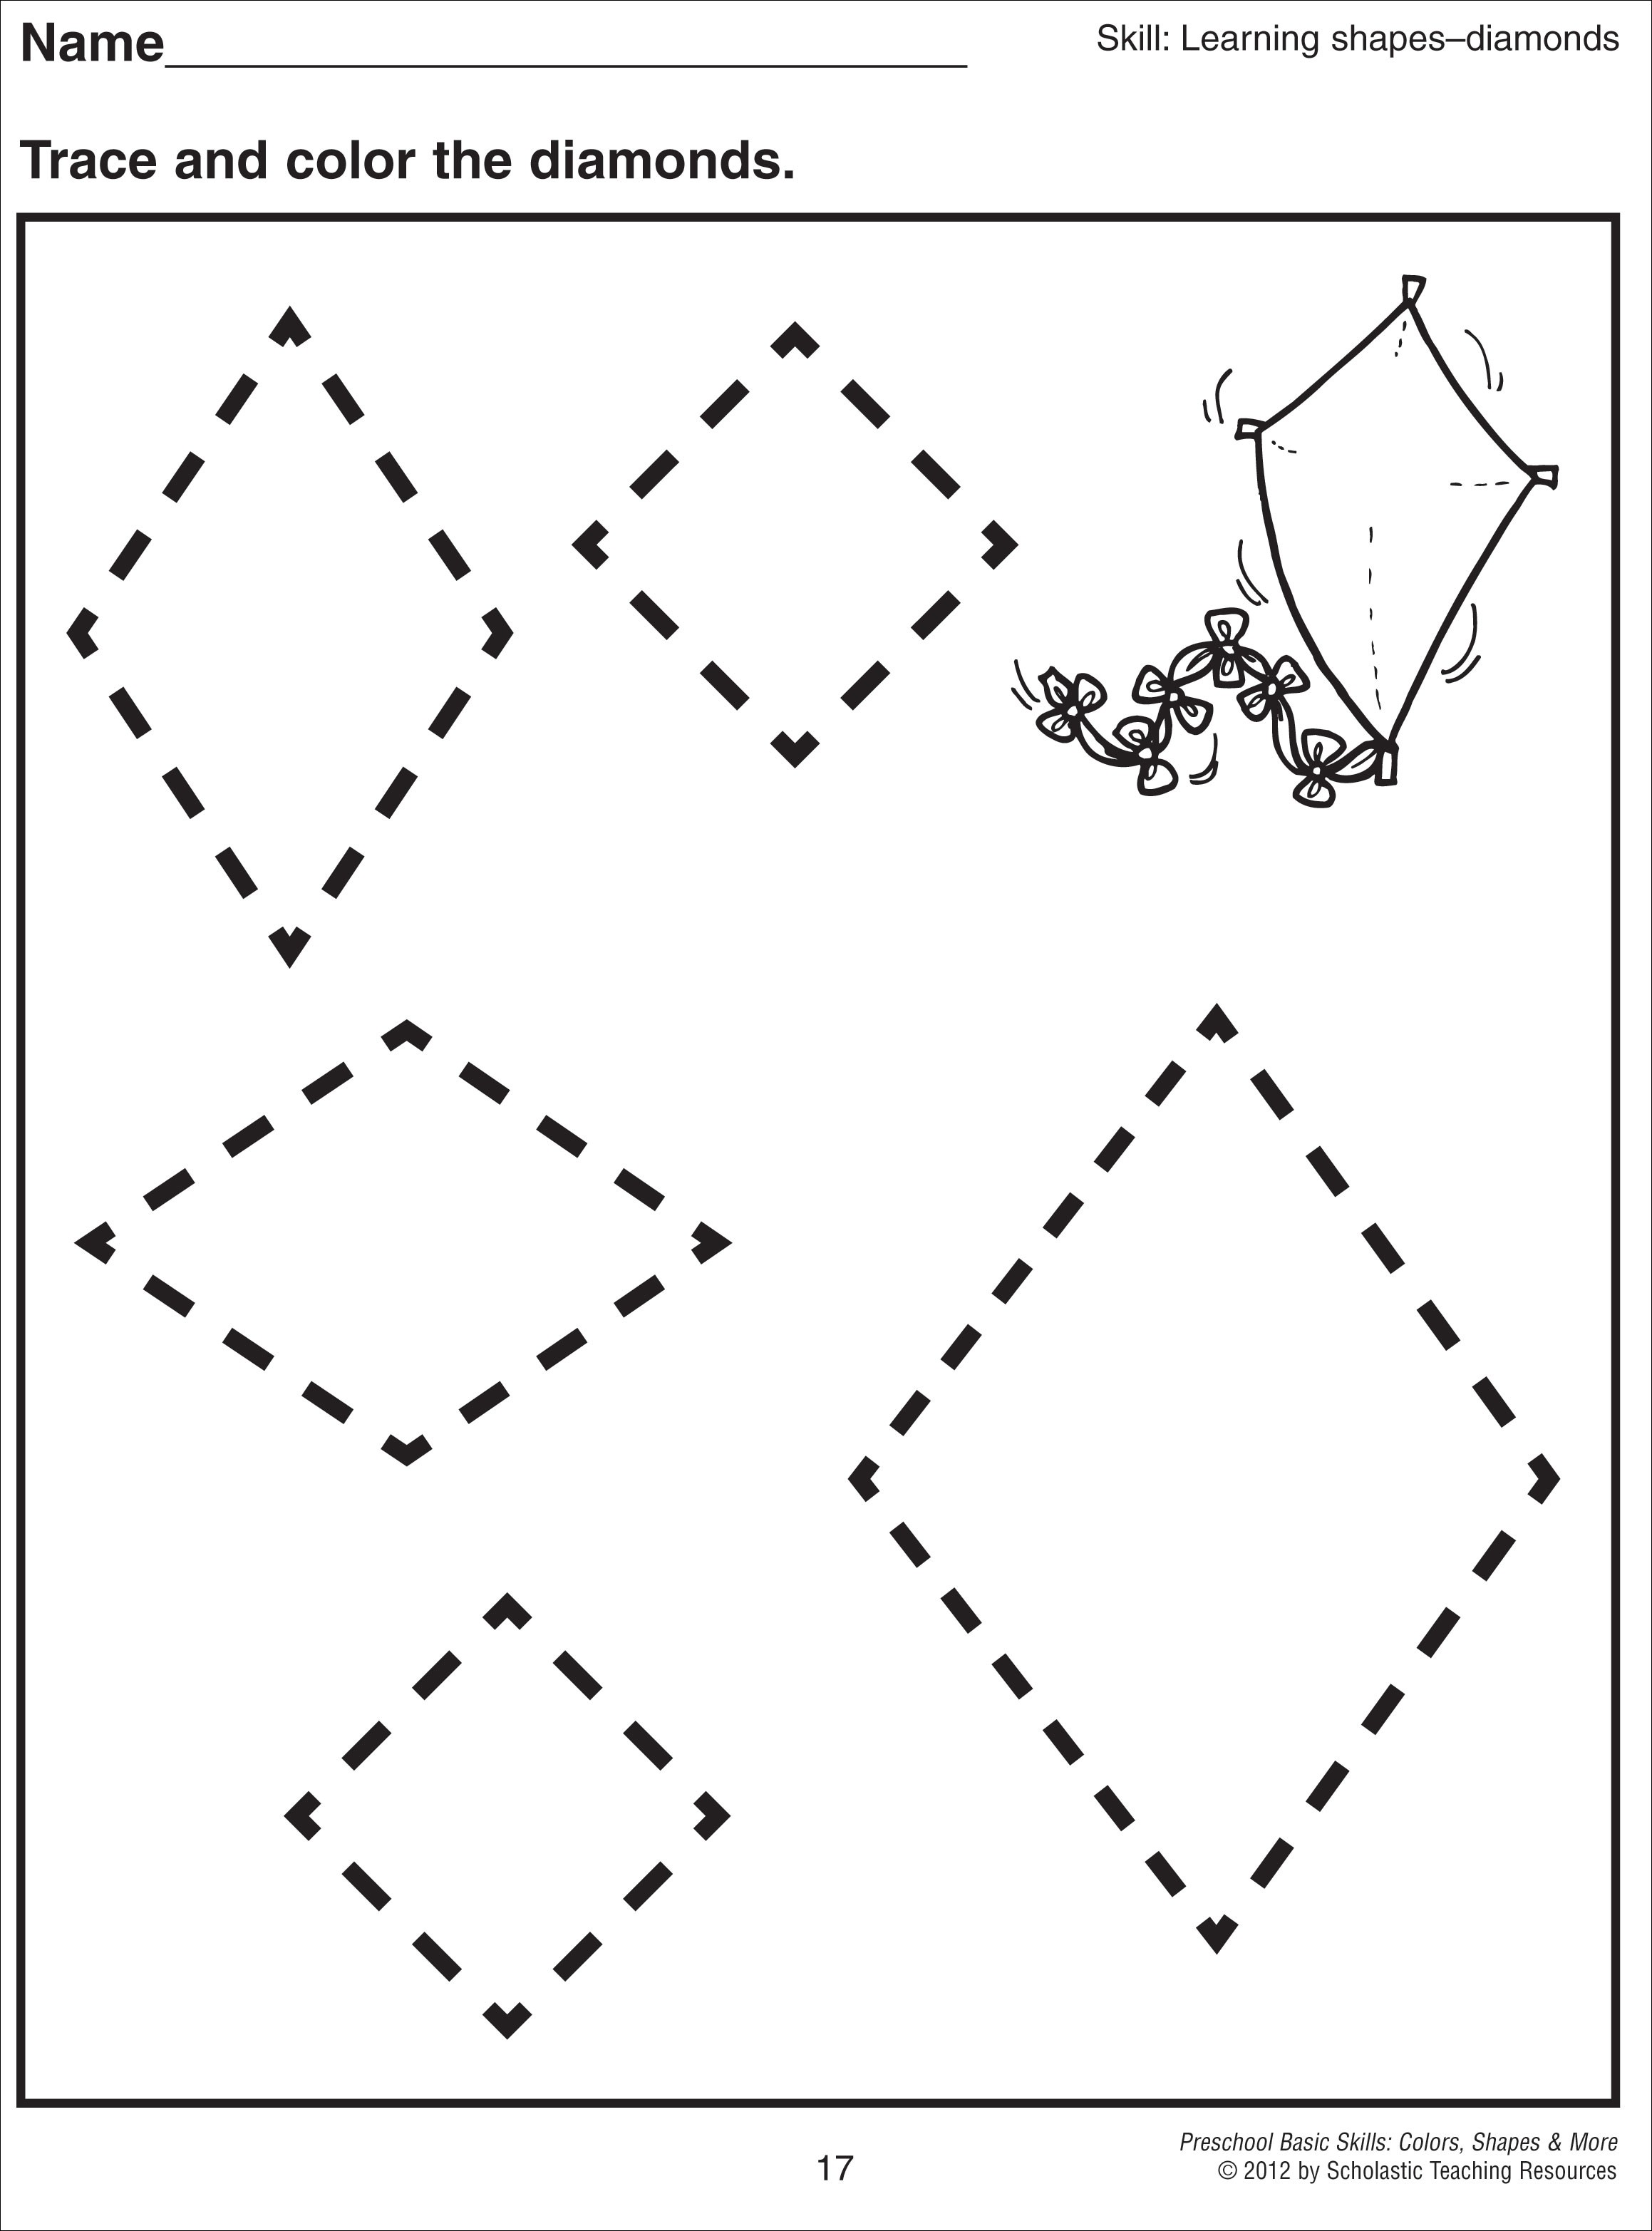 Printables Drawing Rhombus Worksheet Messygracebook